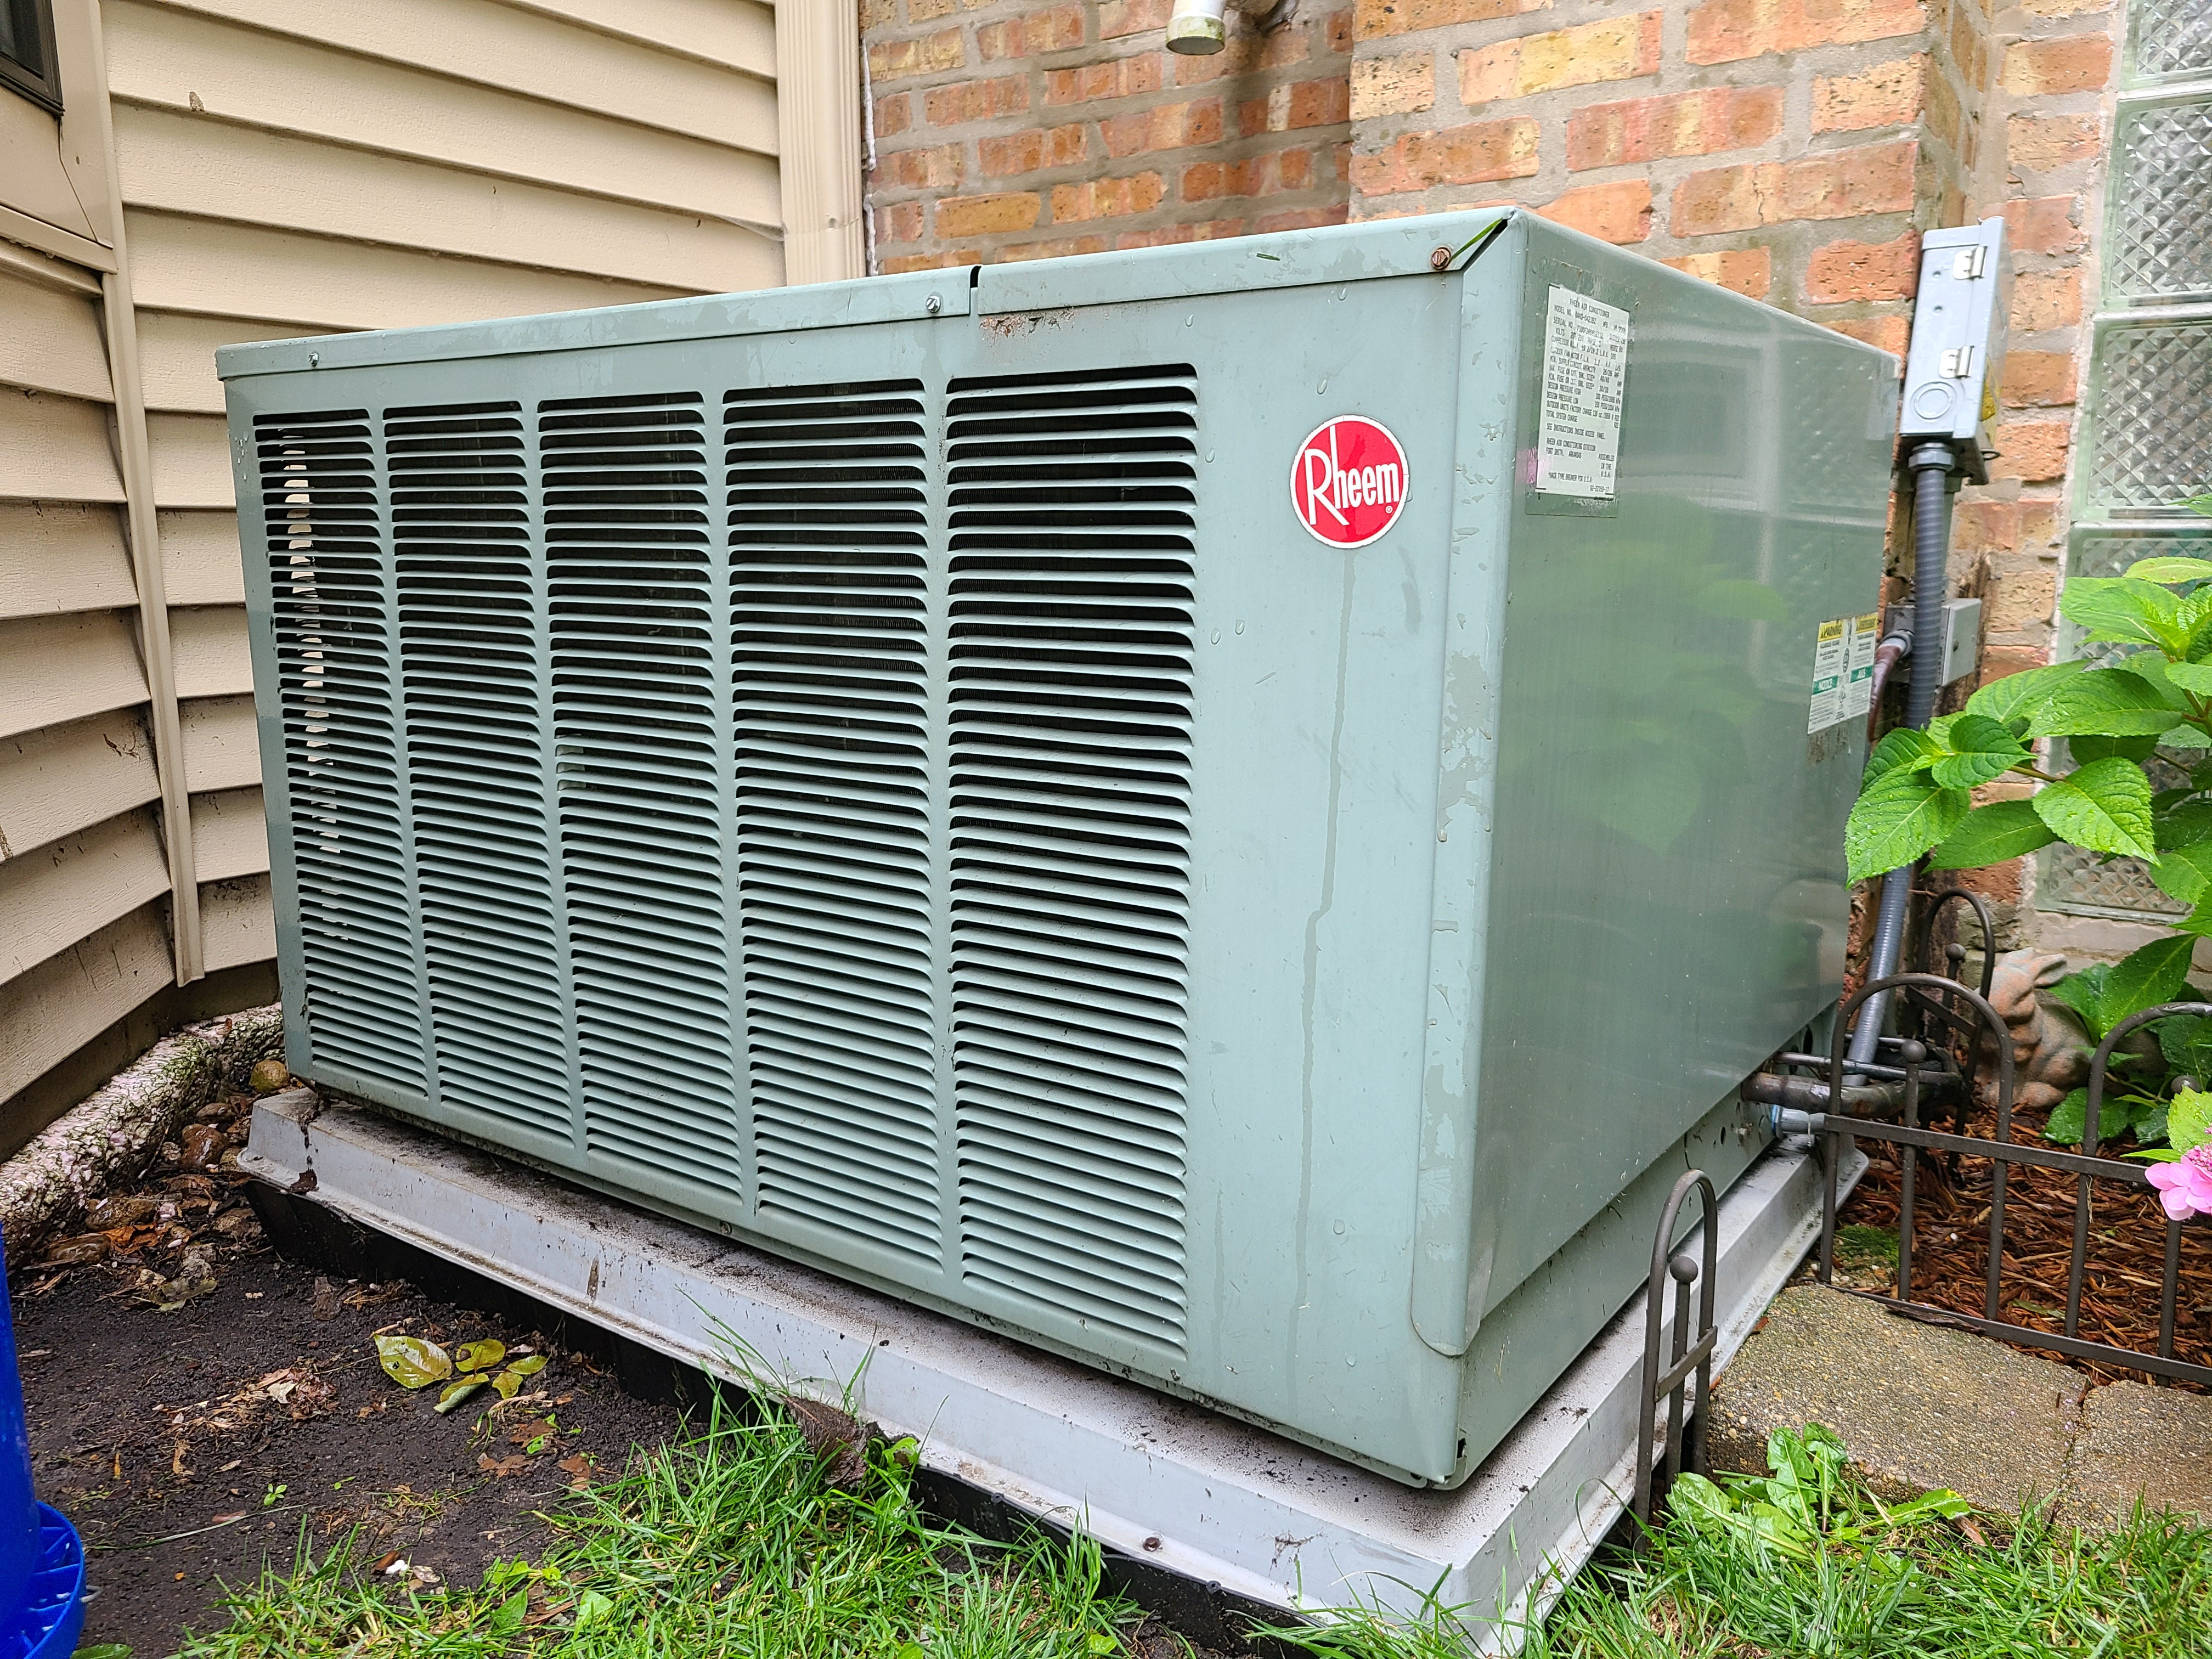 Photo of rheem condenser after CTS